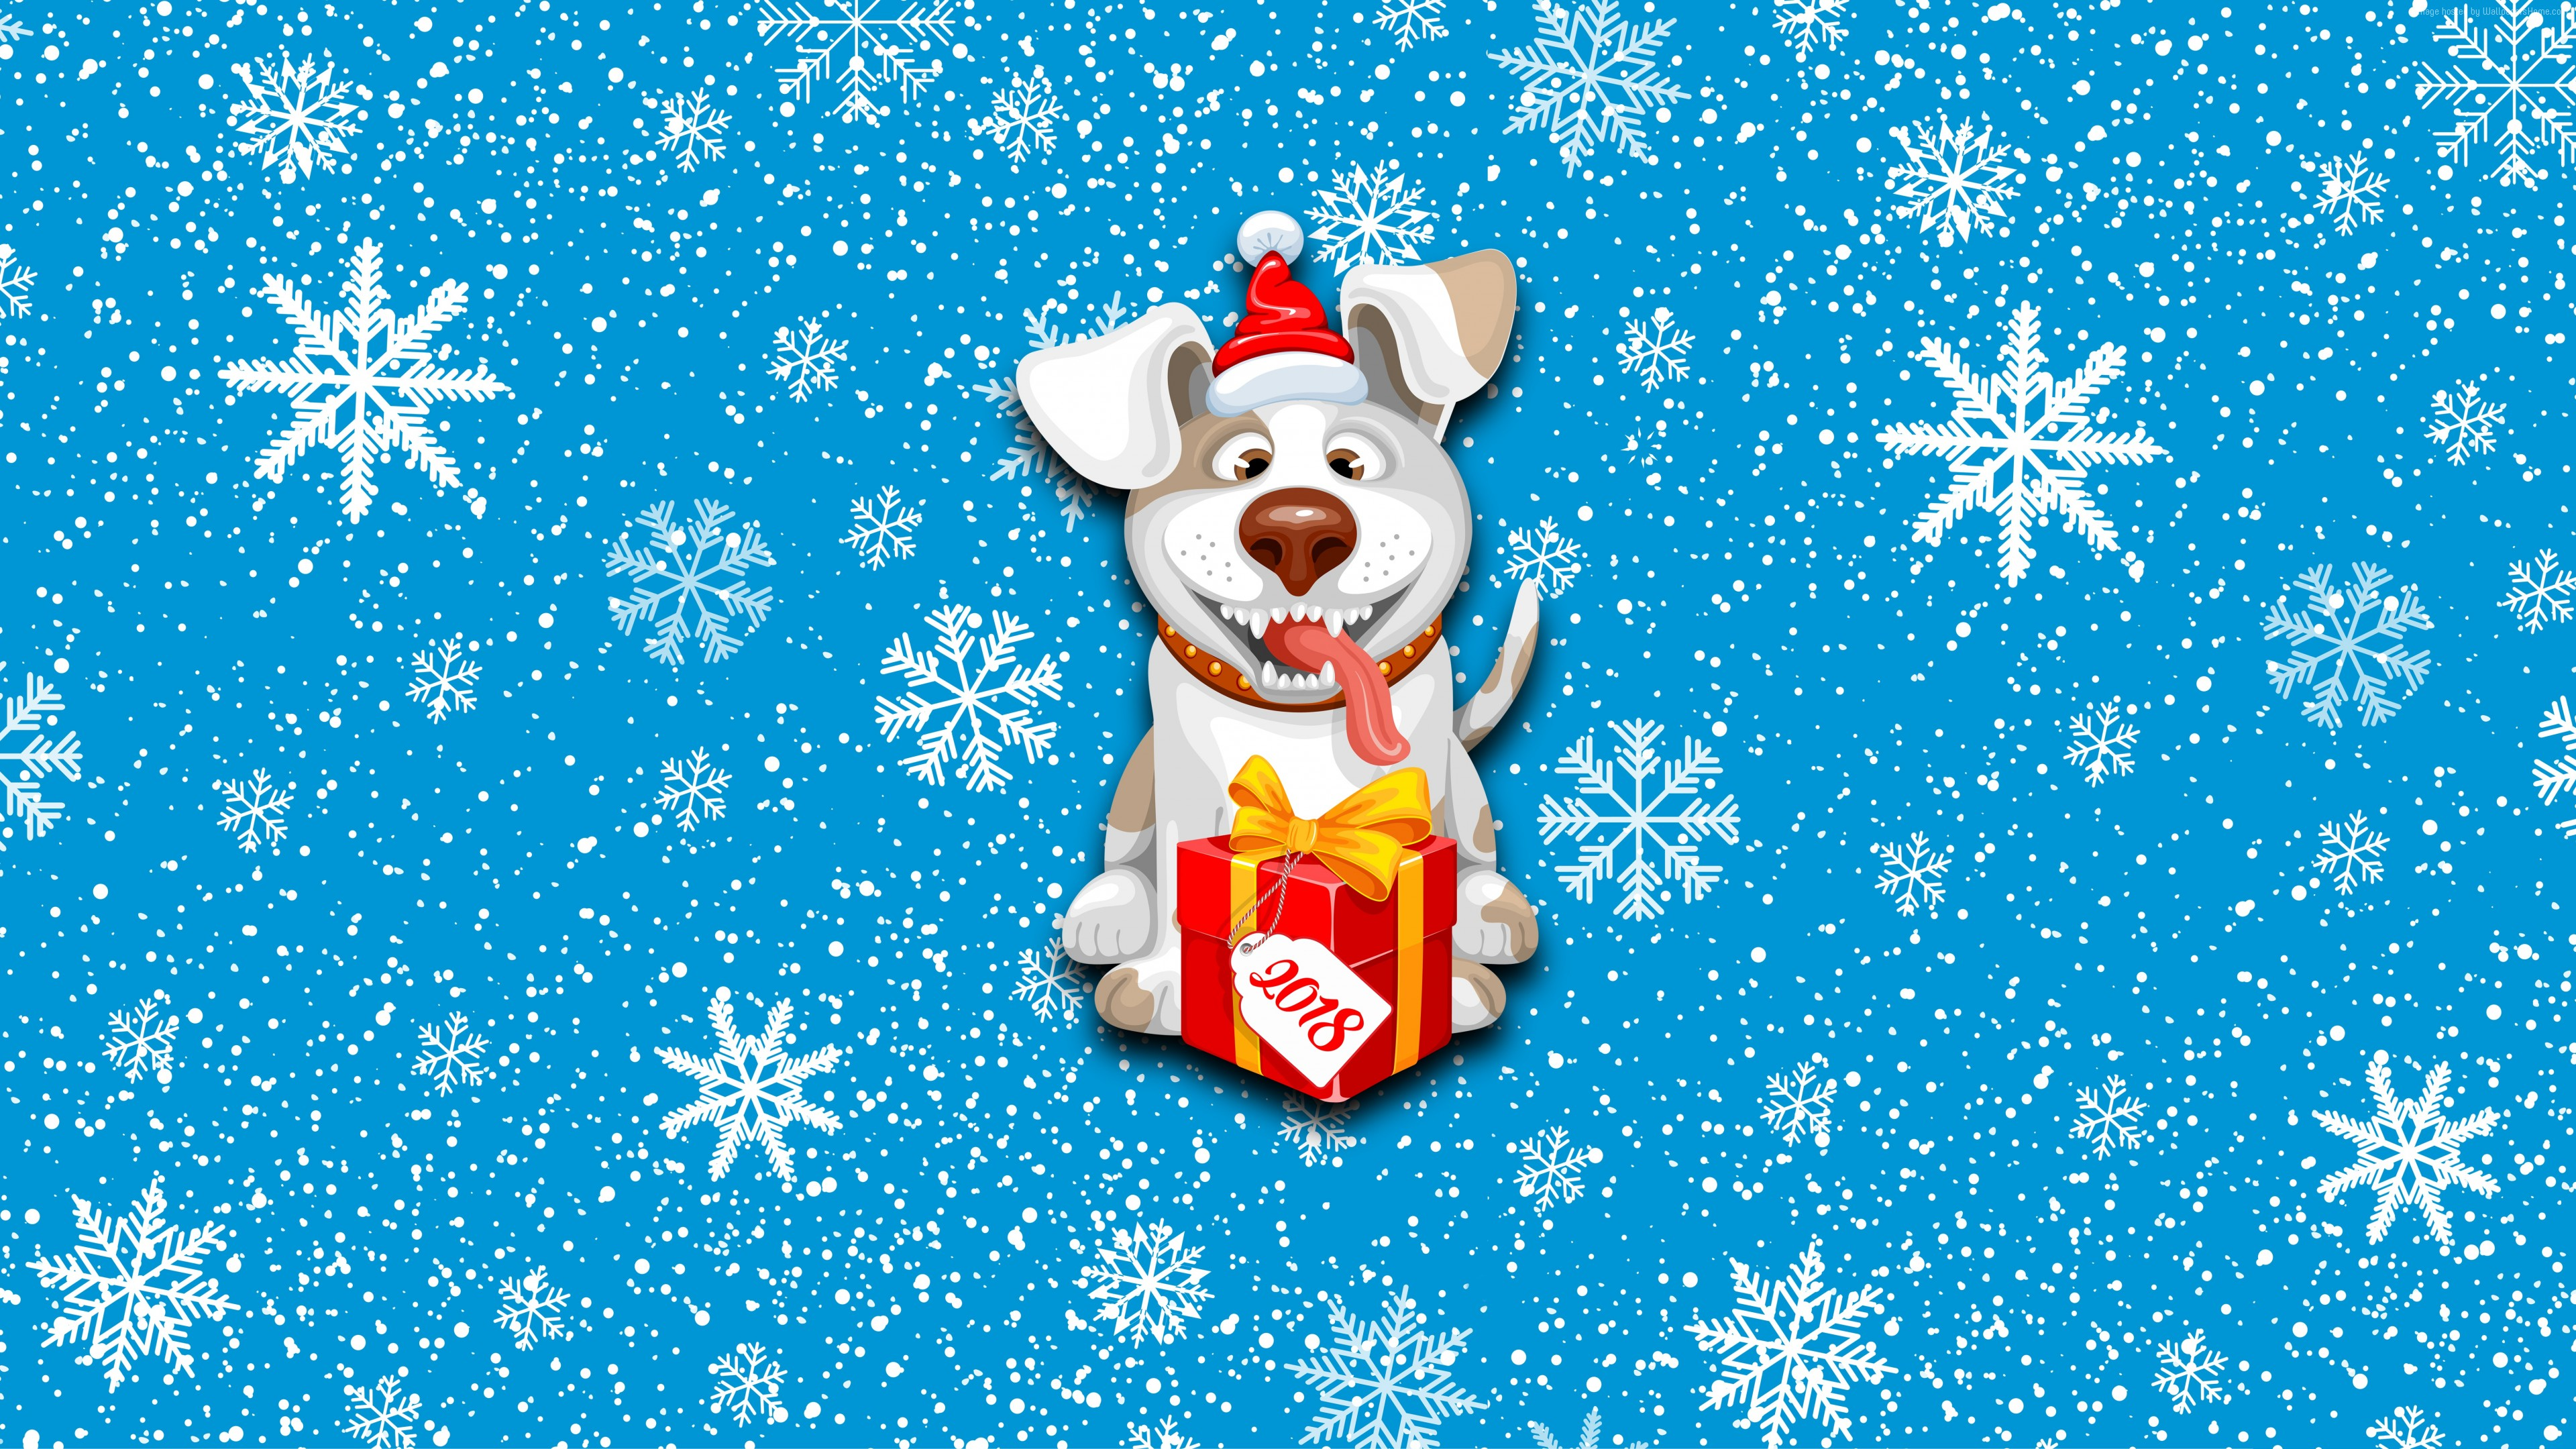 wallpaper christmas, new year, snow, dog, cute animals, 8k, holidays